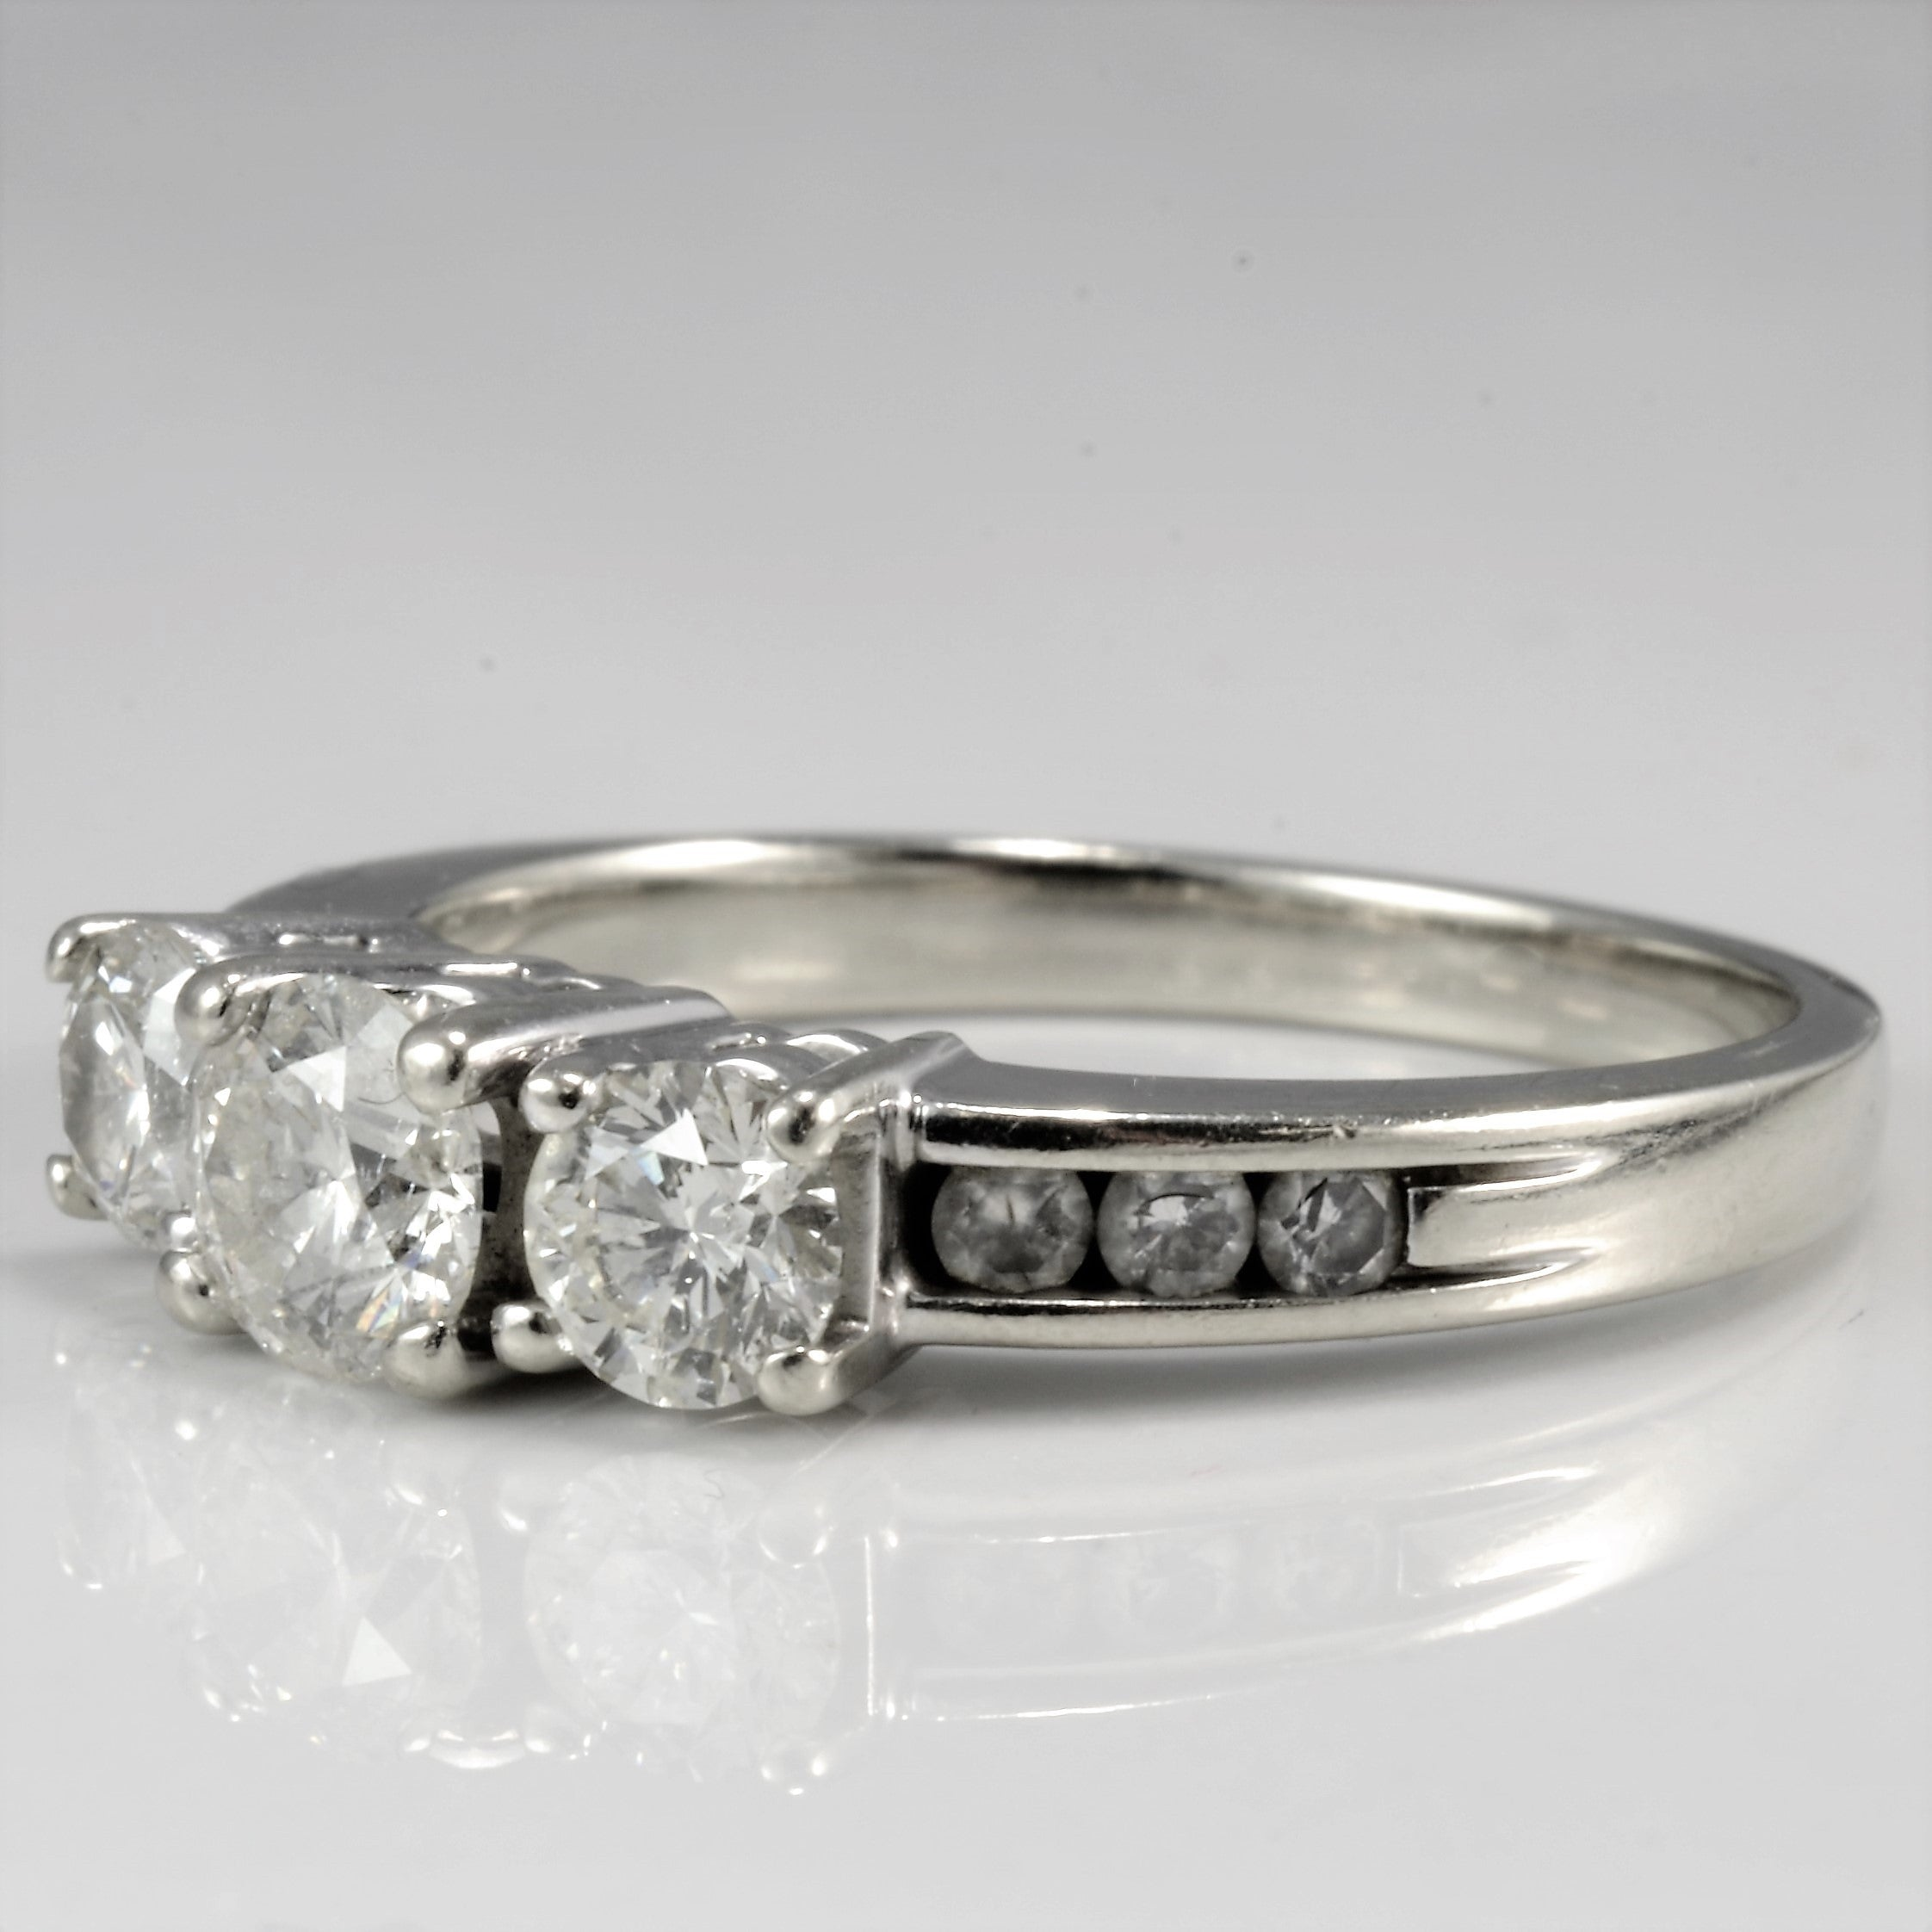 Elegant Three Stone Diamond Engagement Ring | 0.99 ctw, SZ 6.75 |